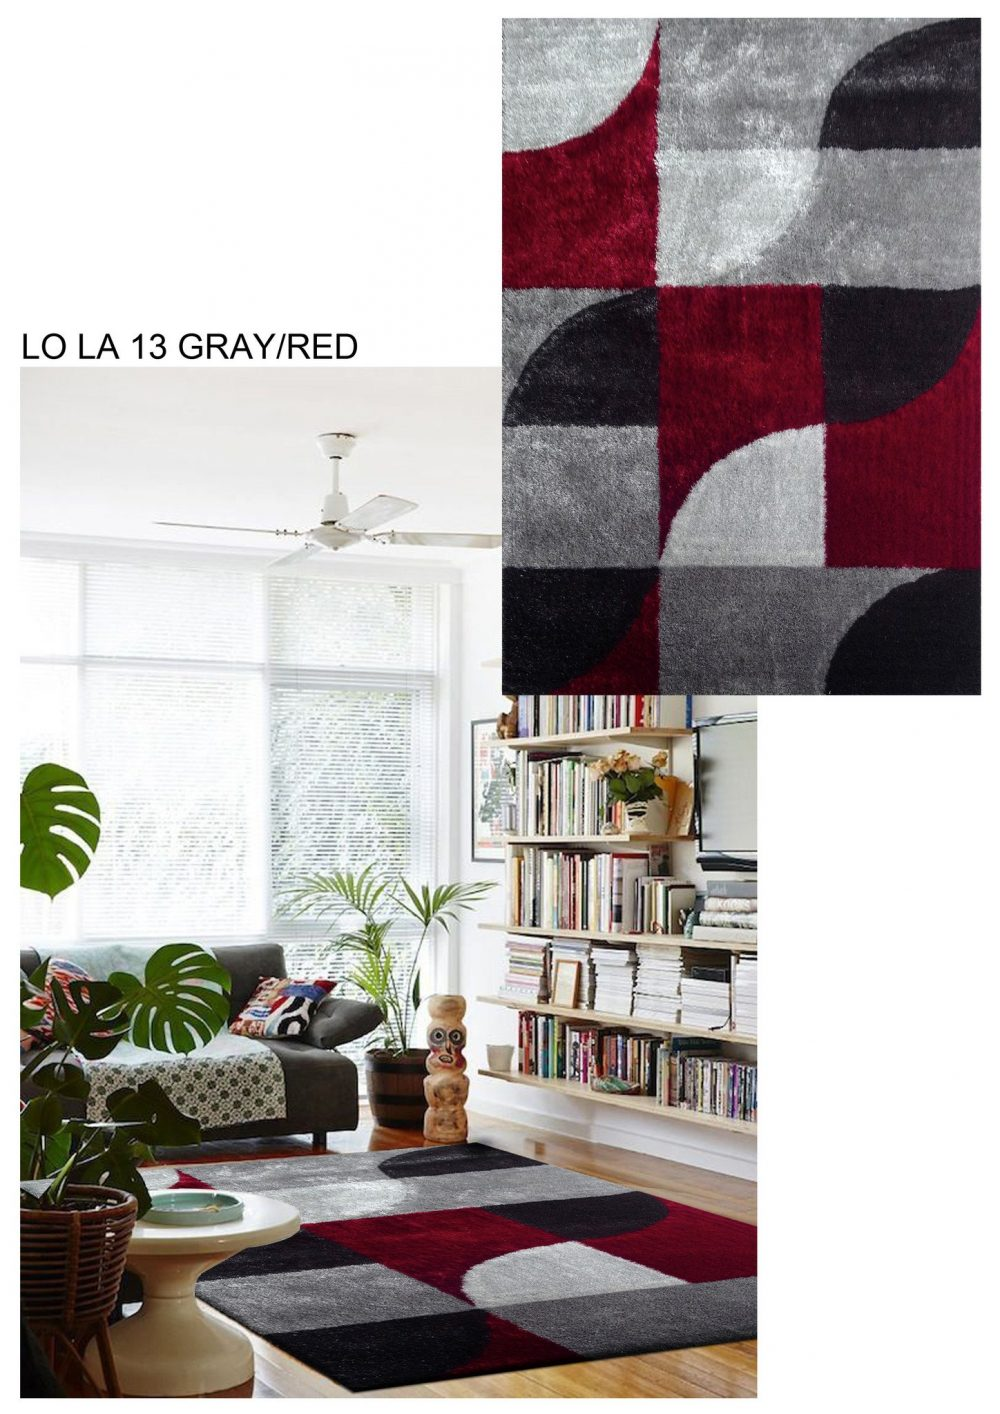 lola 13 grey red area rug